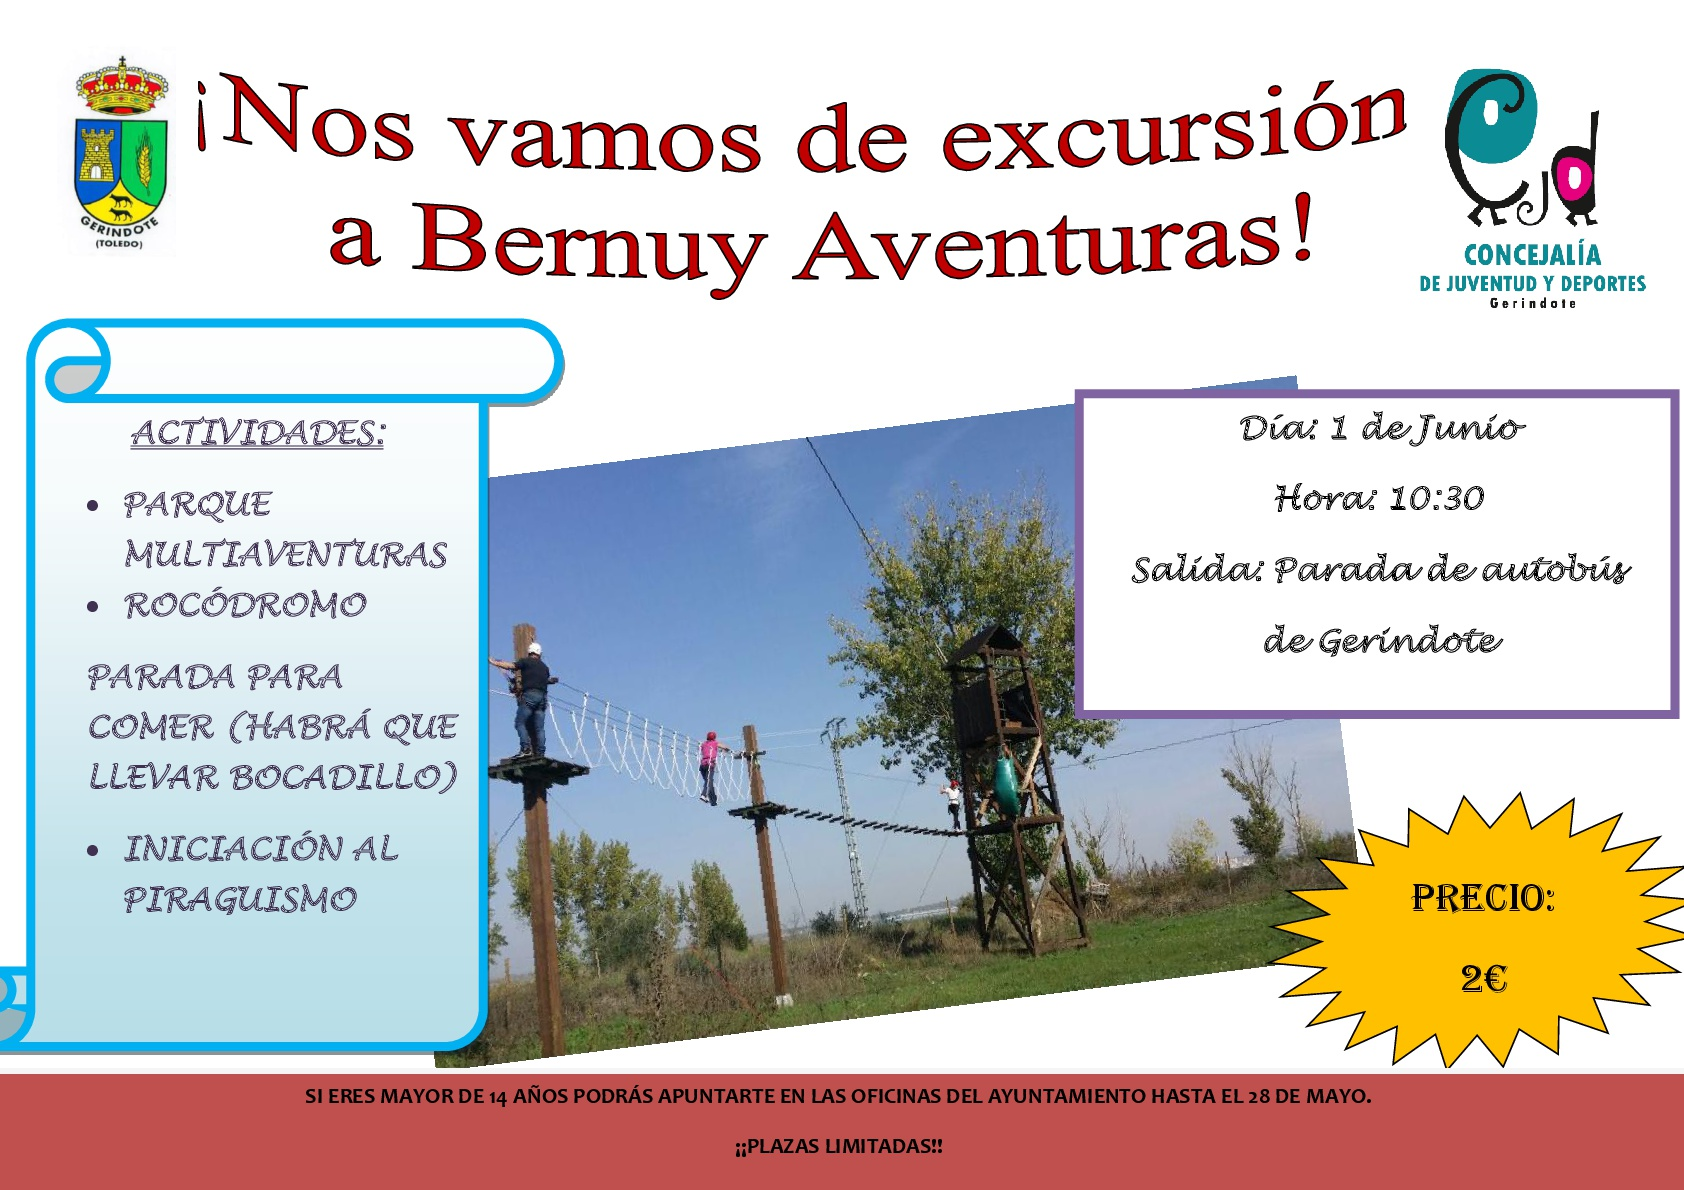 2018-EXCURSION BERNUI AVENTURAS pdf-001.jpg